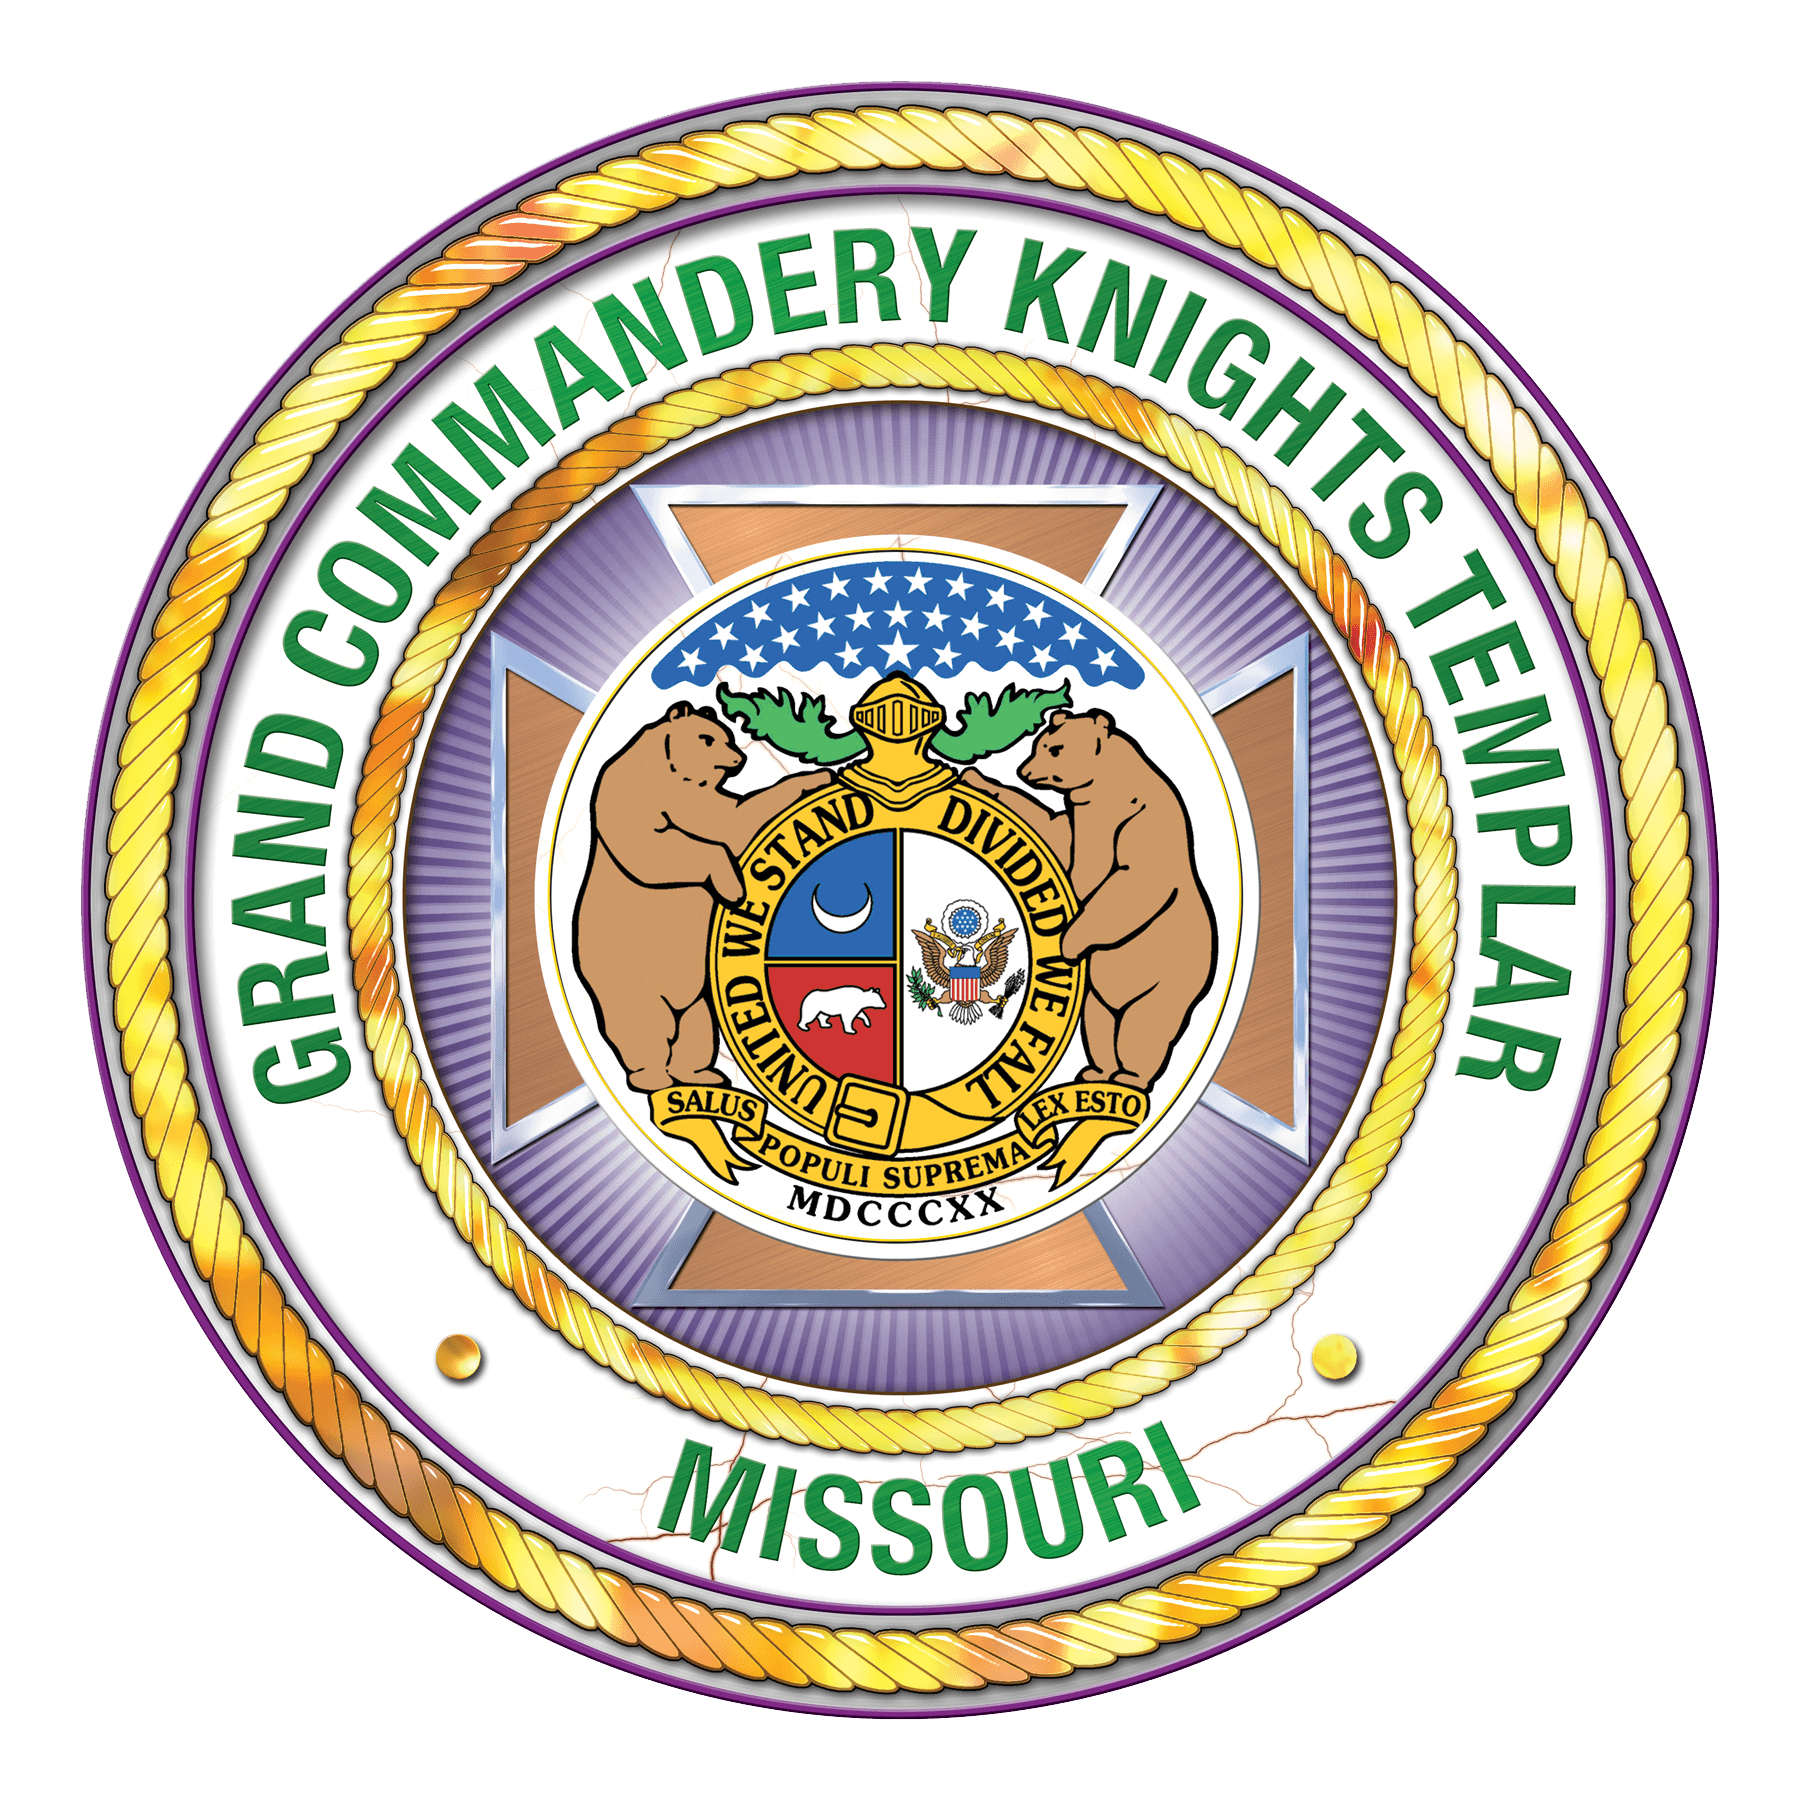 Annual Grand Commander's Breakfast @ Webster Groves Masonic Temple | Webster Groves | Missouri | United States